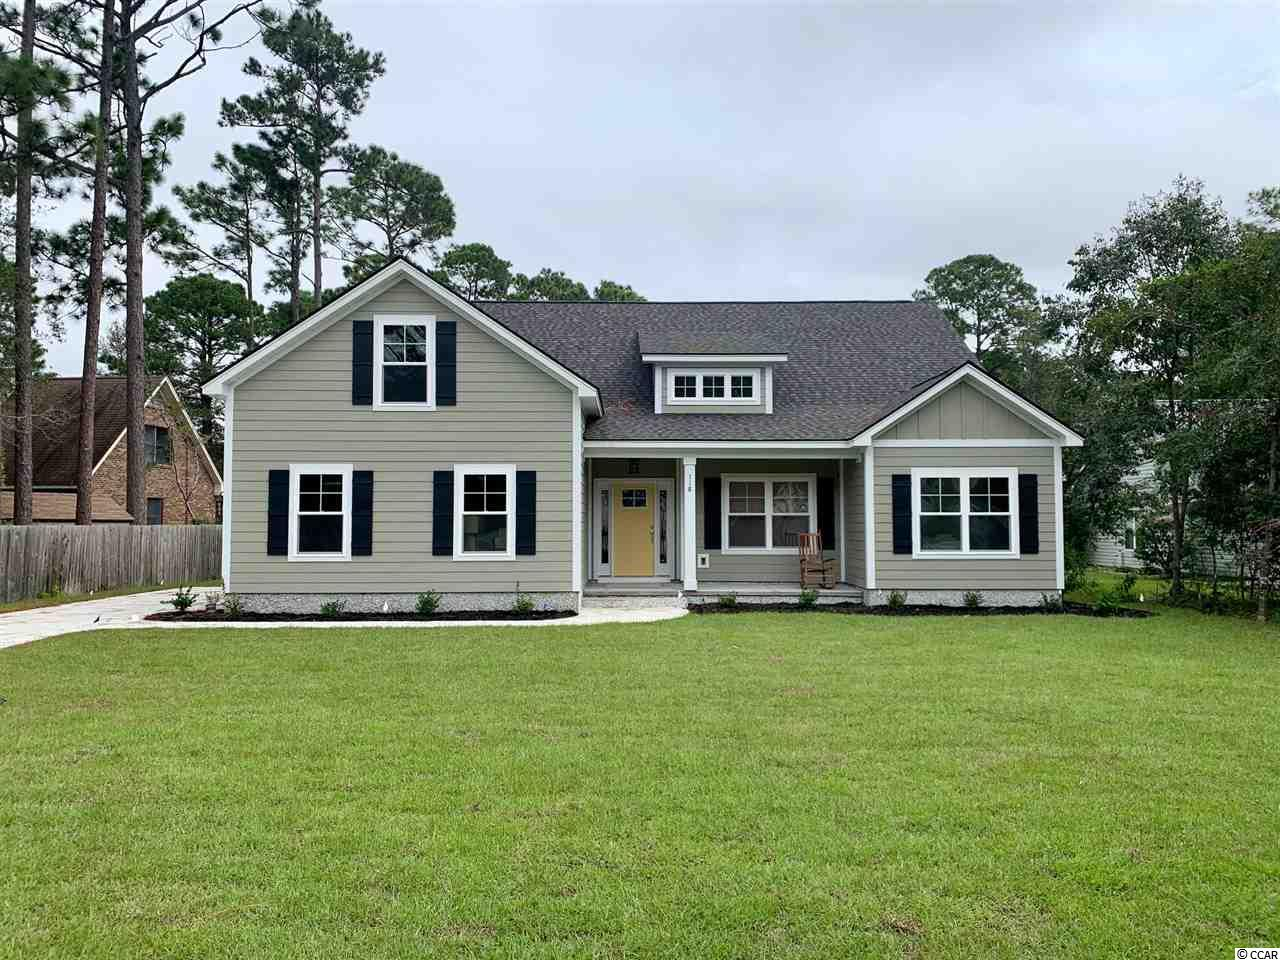 Under Construction! No HOA! Low Country style cottage home with impressive standard features to include LVT floors, granite counter tops, stainless steel appliances and carpet. Close to the shops, restaurants, golf courses and beaches of Pawleys Island. Take comfort in one of our newly constructed homes that has a reputation for quality and value. Whether you are a first-time home buyer or looking for your next home, Let us help you through the buying process and welcome you to your new home.